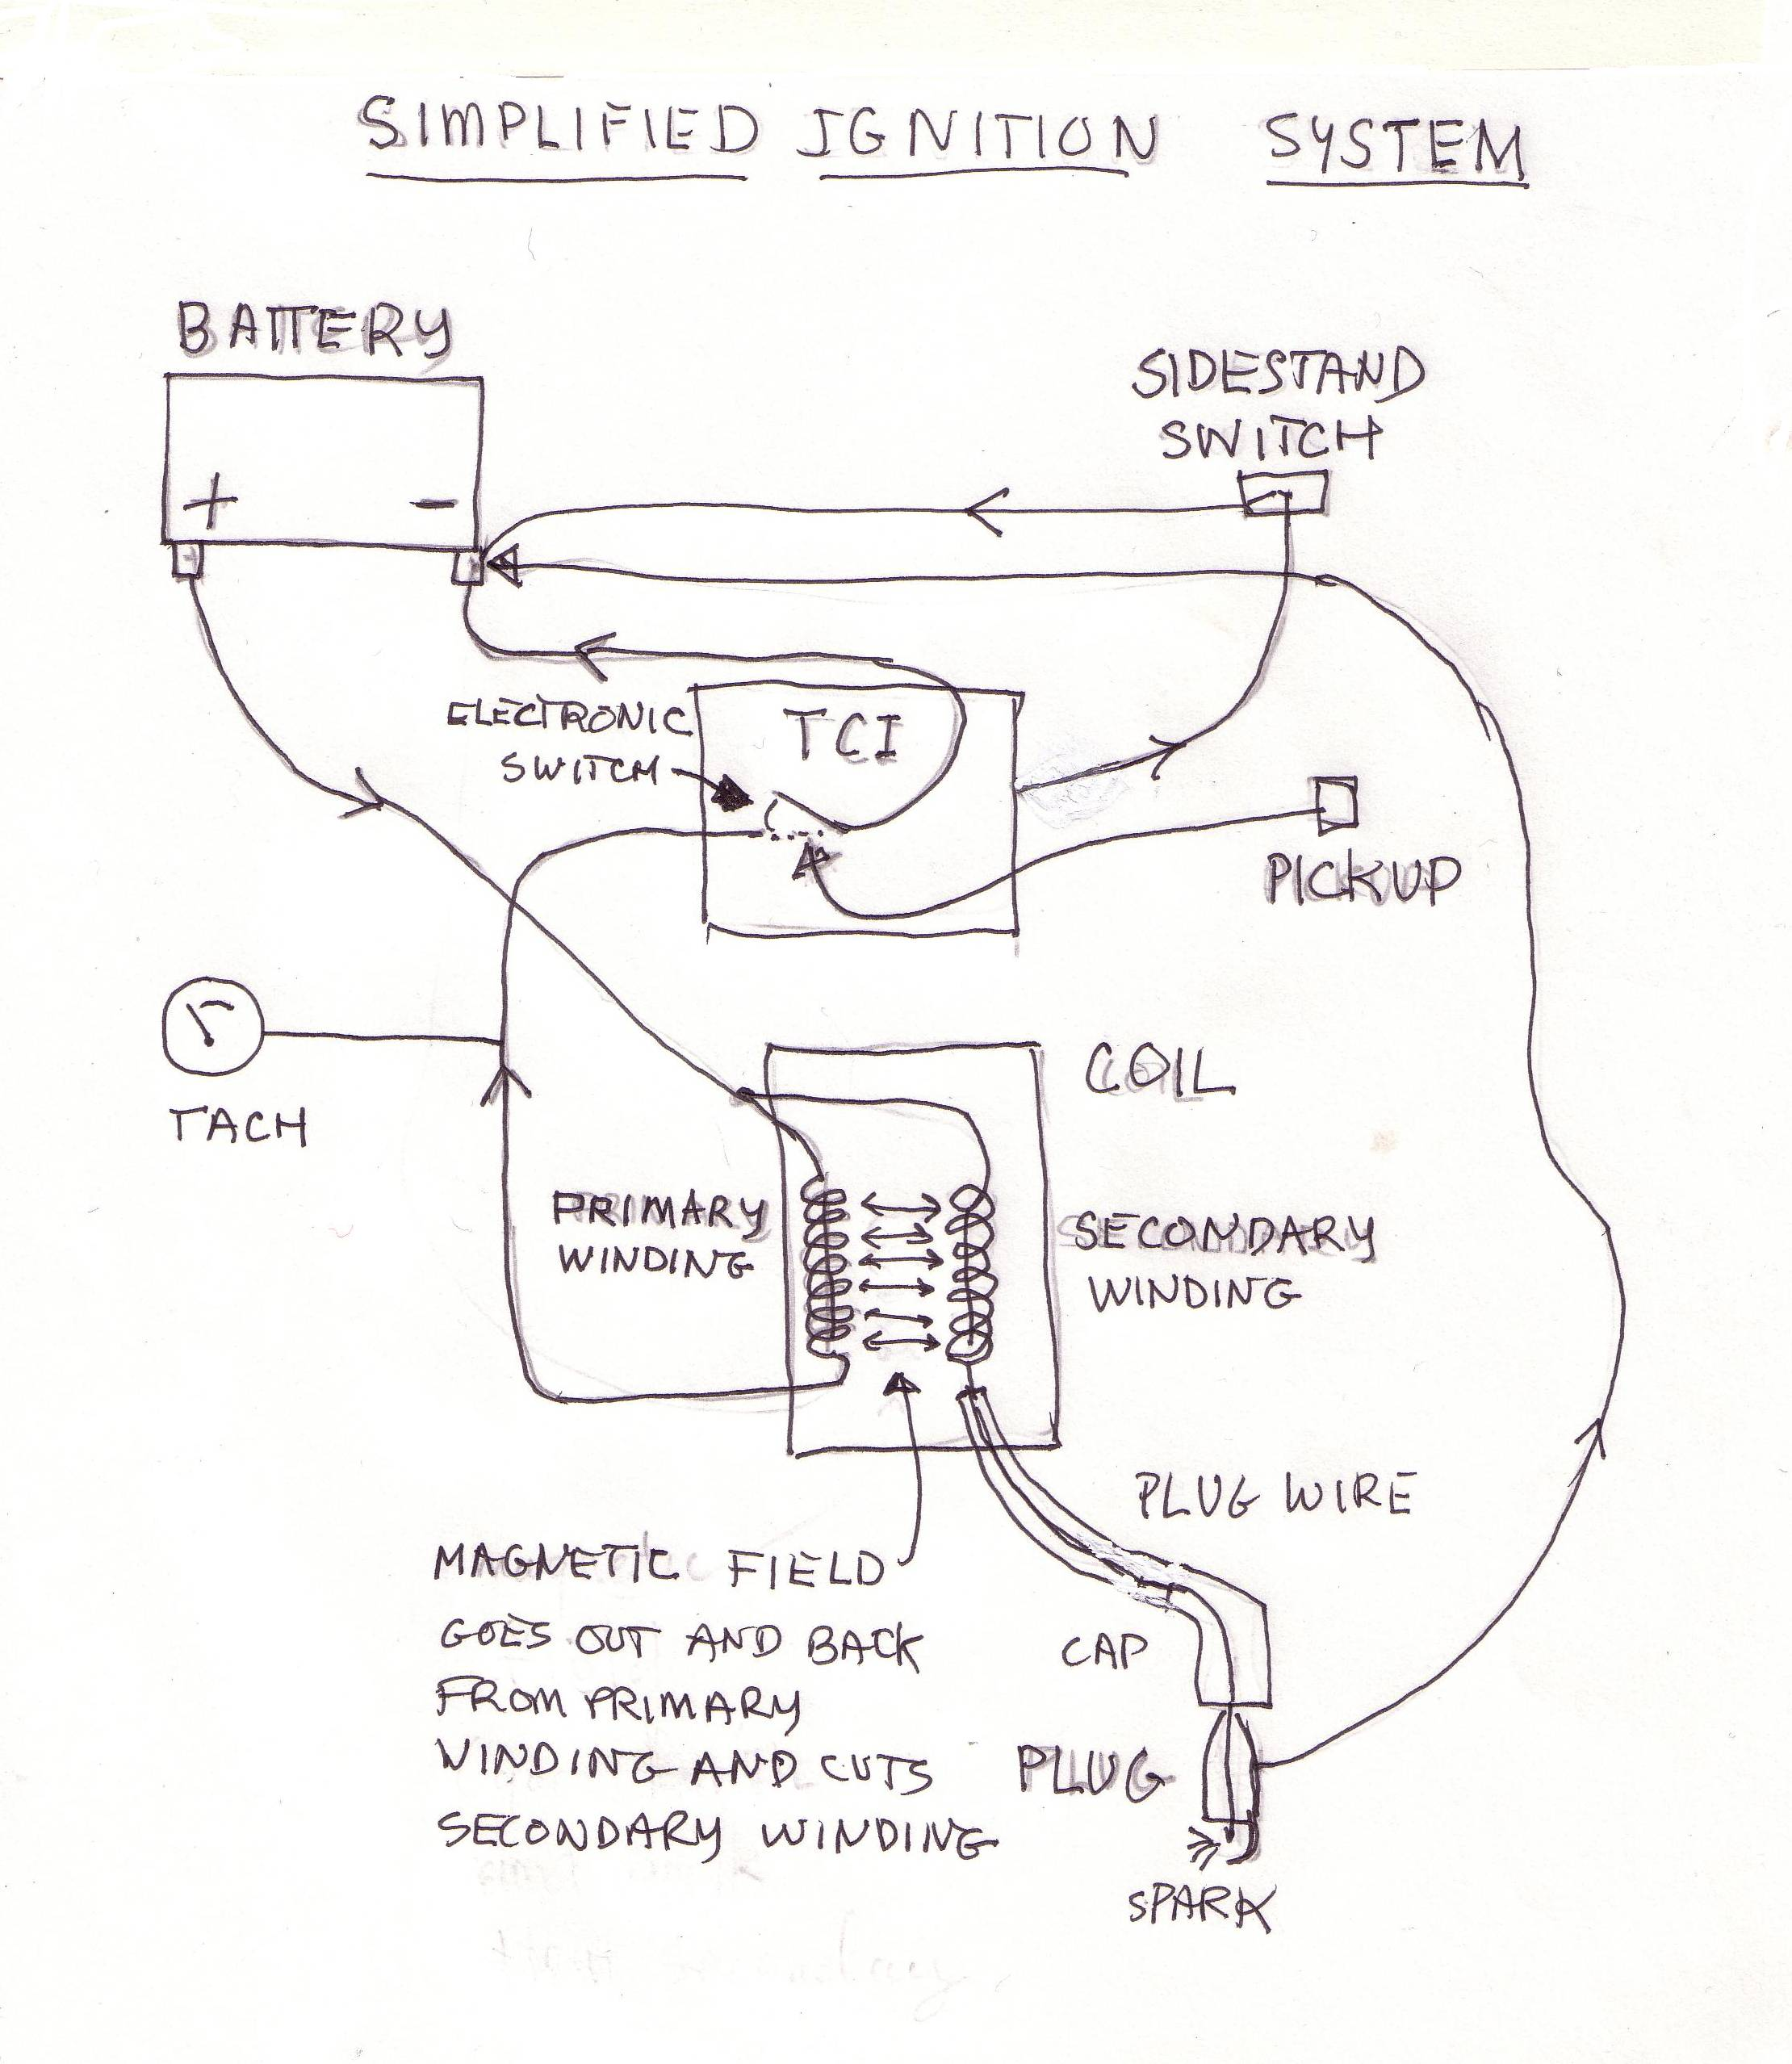 virago ignition systems simplified yamaha virago yamaha xv250 virago wiring diagram yamaha yfm 250 wiring diagram wiring